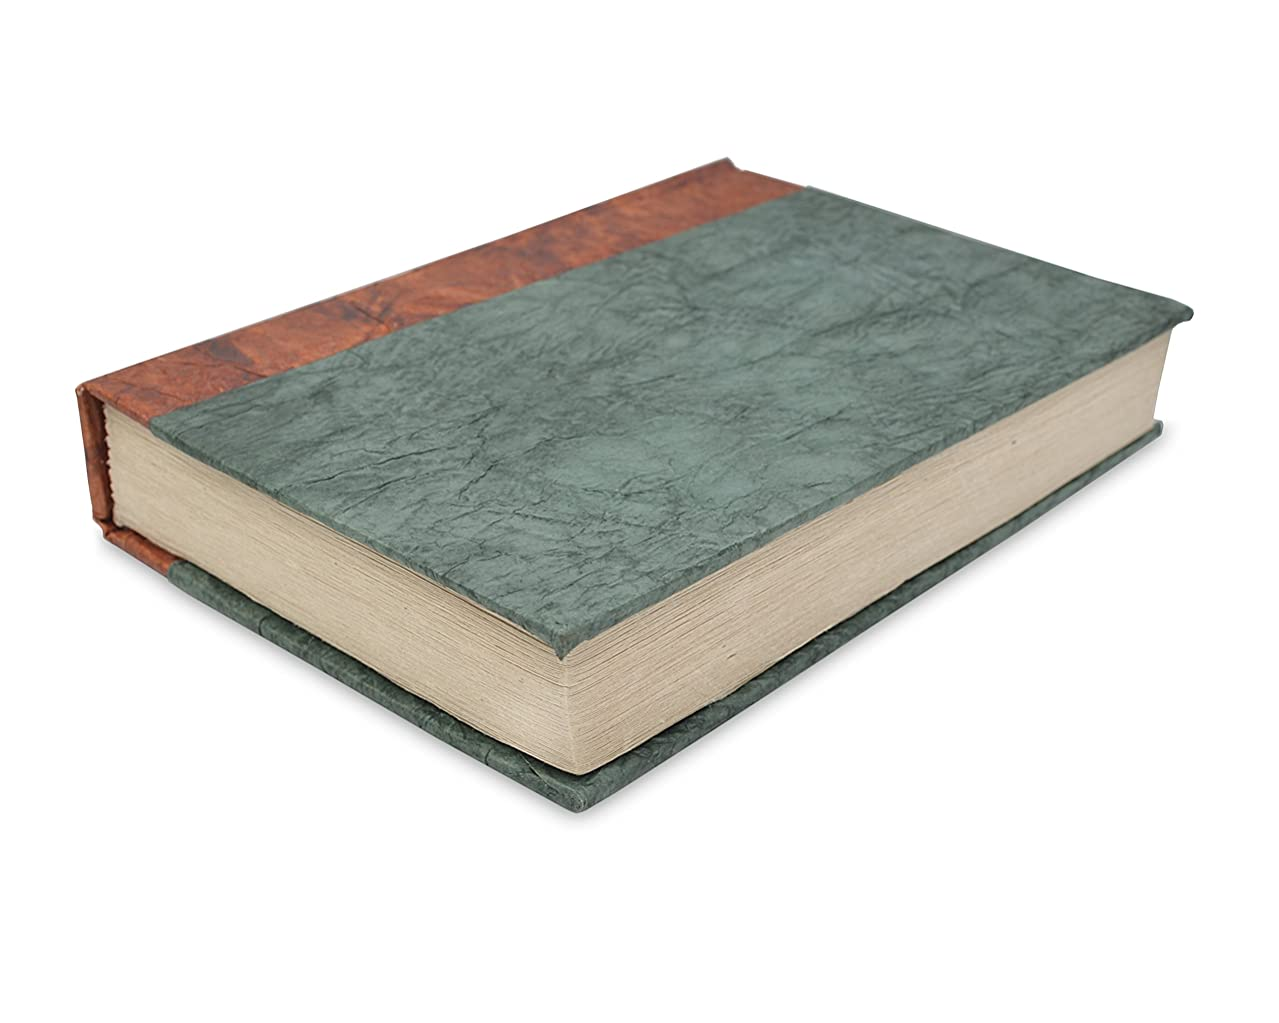 Nepali Eco Writing Journal with Extra-Thick Vintage Handmade Lokta Paper, Clean-cut, Made in the Himalayas of Nepal, 6x9 Inches (Forest Green, Epic)